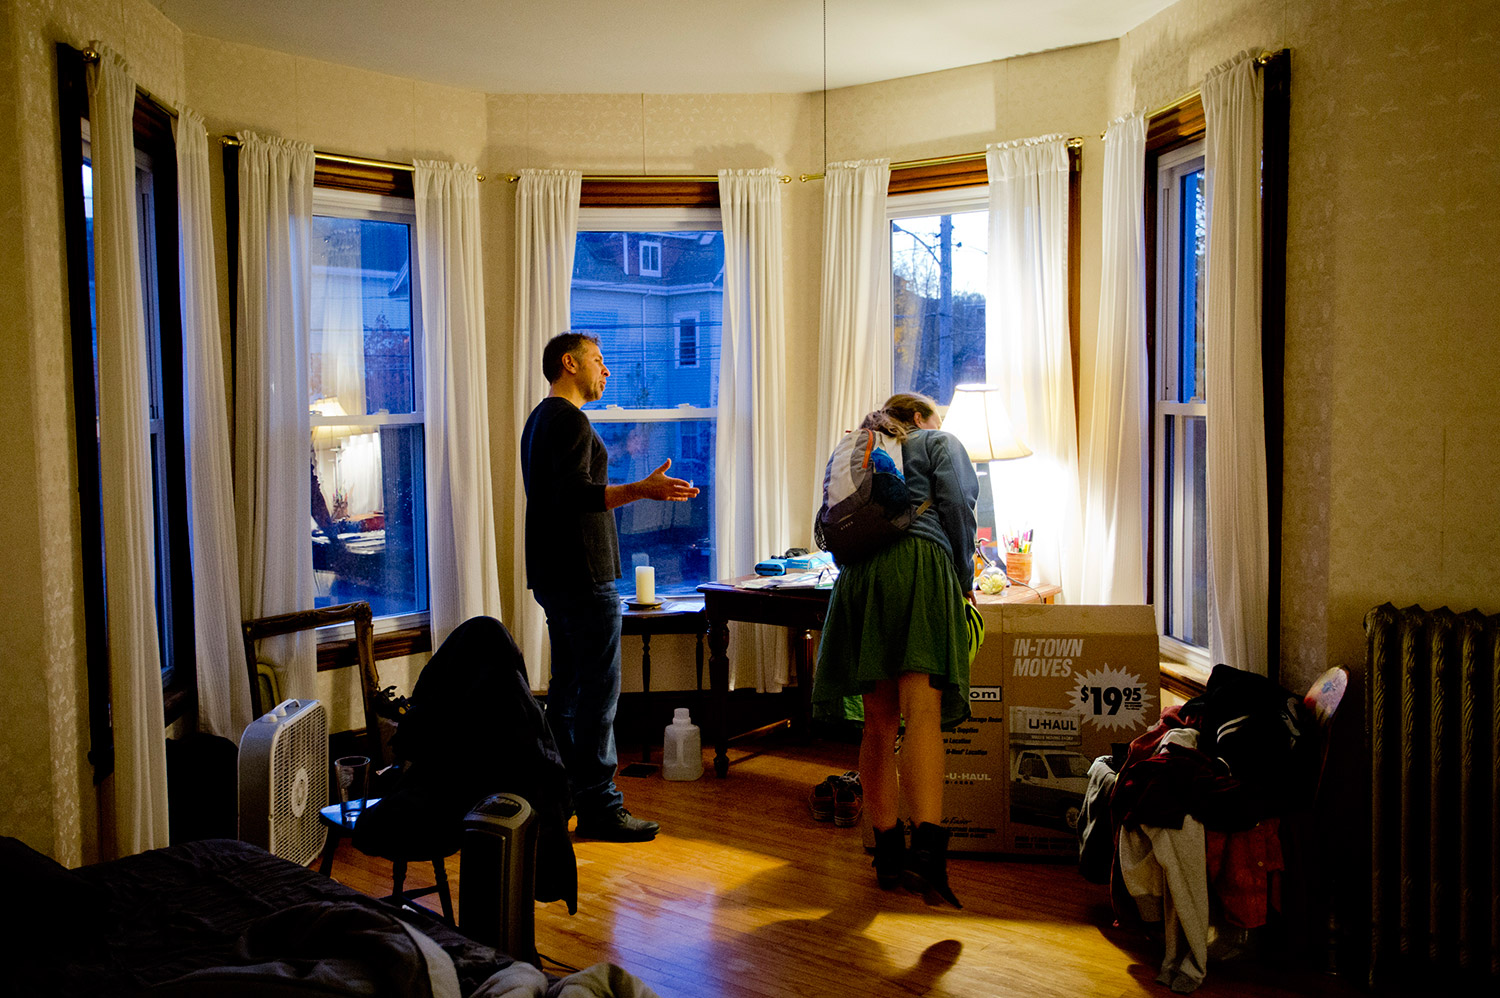 Pete Risano shows Maddie Purcell, 25, of Portland, a two-bedroom apartment for rent